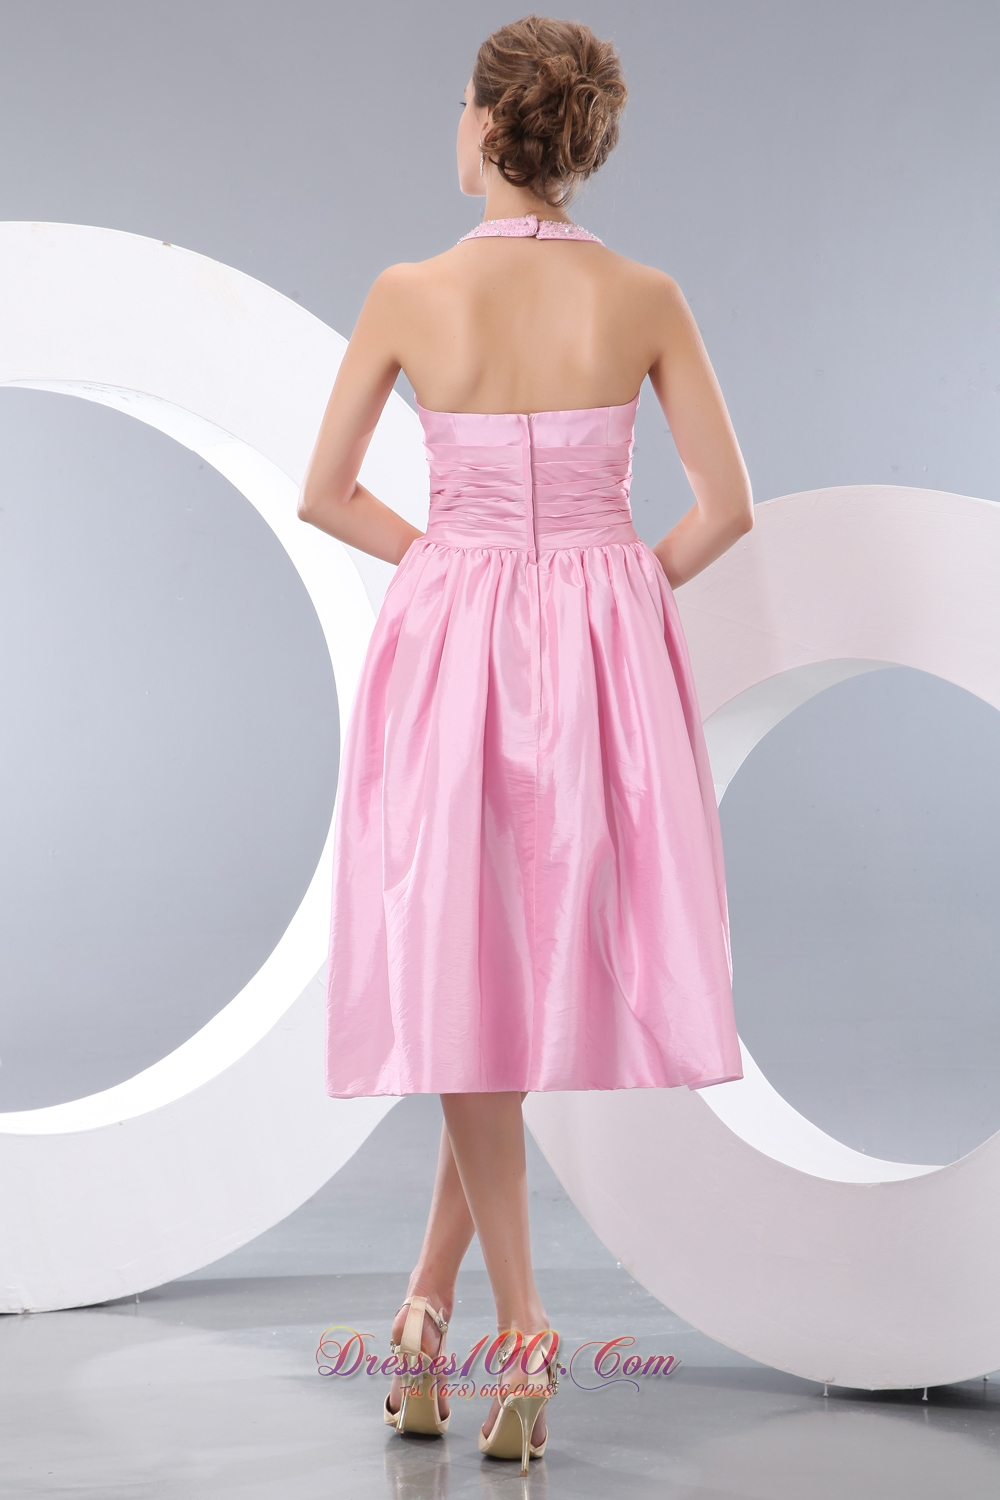 Free shipping on Cocktail Dresses in Weddings amp Events and